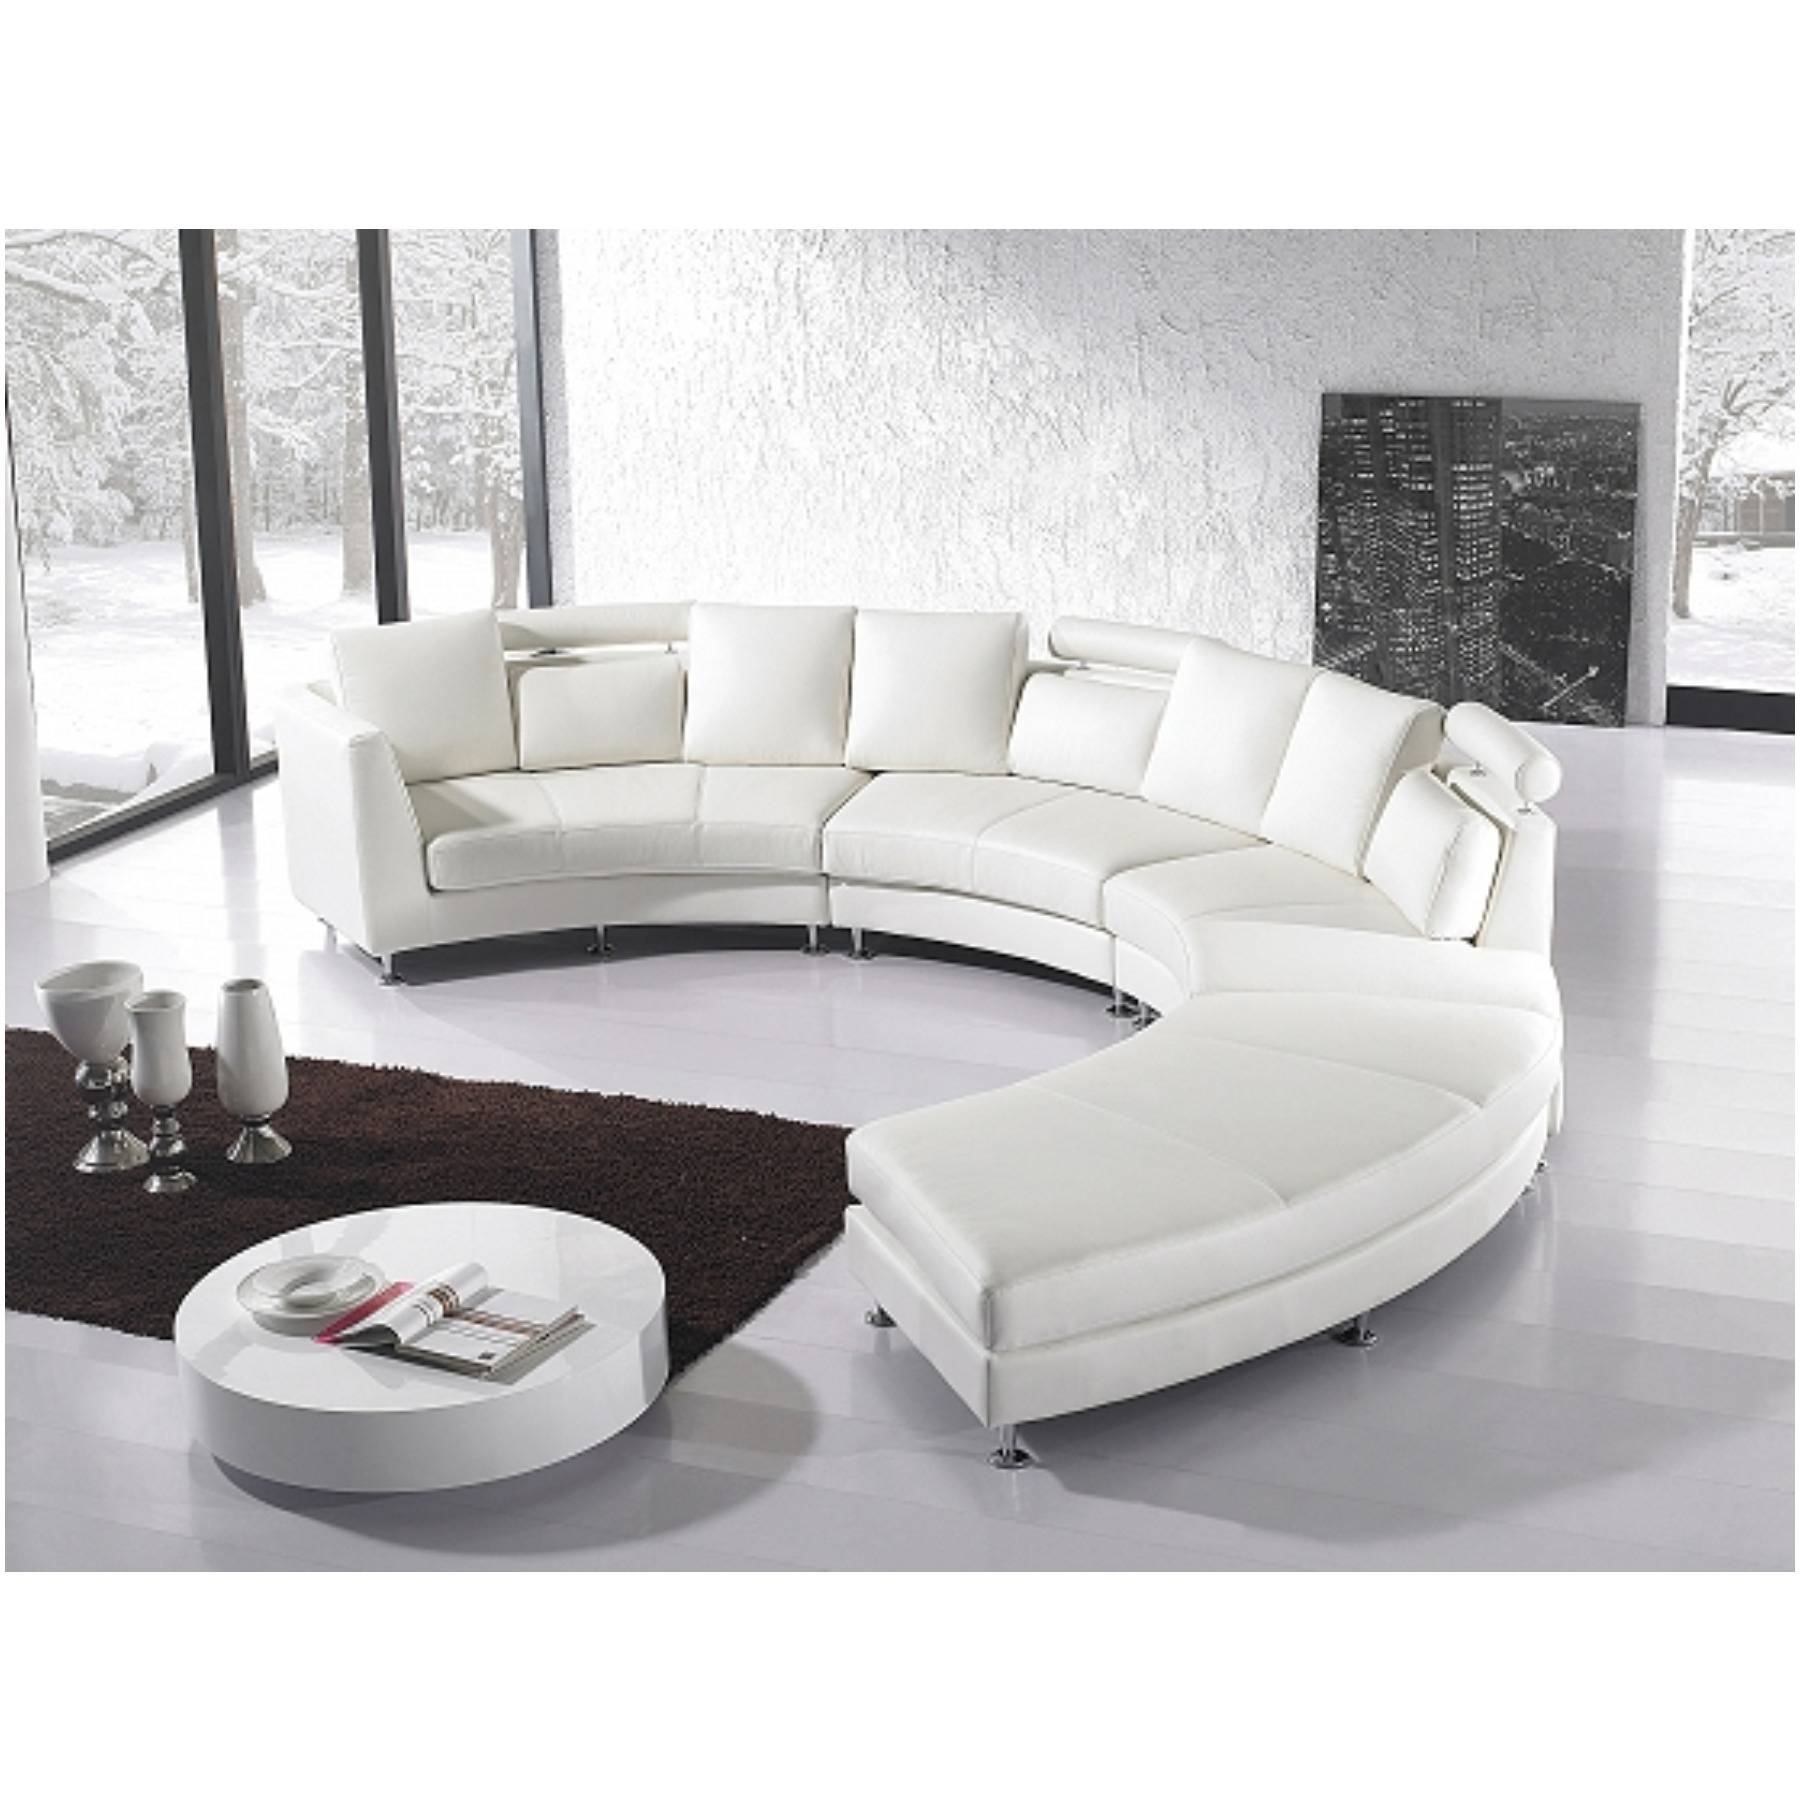 Round Sectional Sofa | Winda 7 Furniture within Round Sectional Sofa (Image 25 of 30)